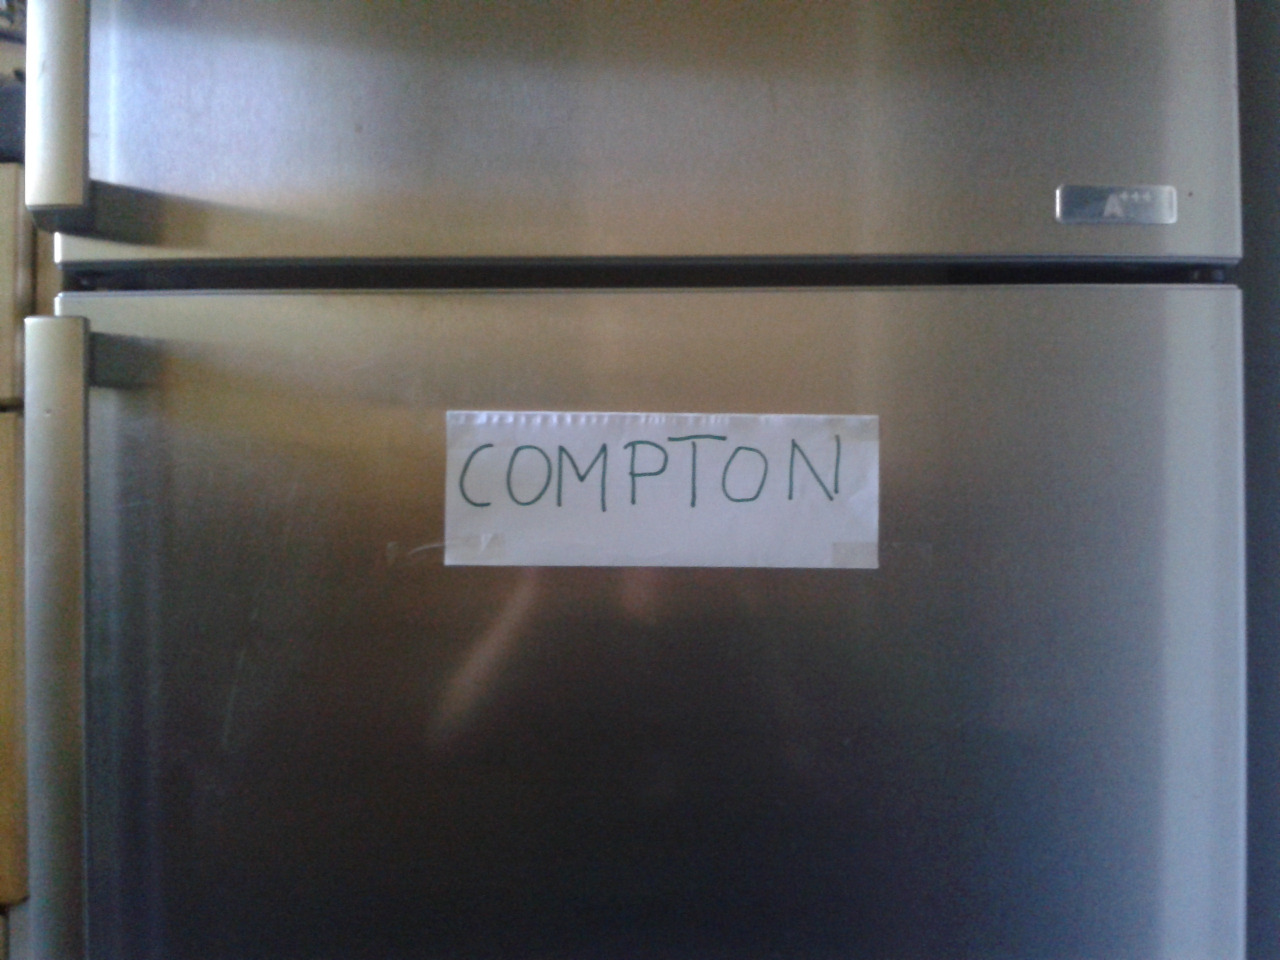 Put this on my freezer to make sure all my ice cubes are comming straight outta compton